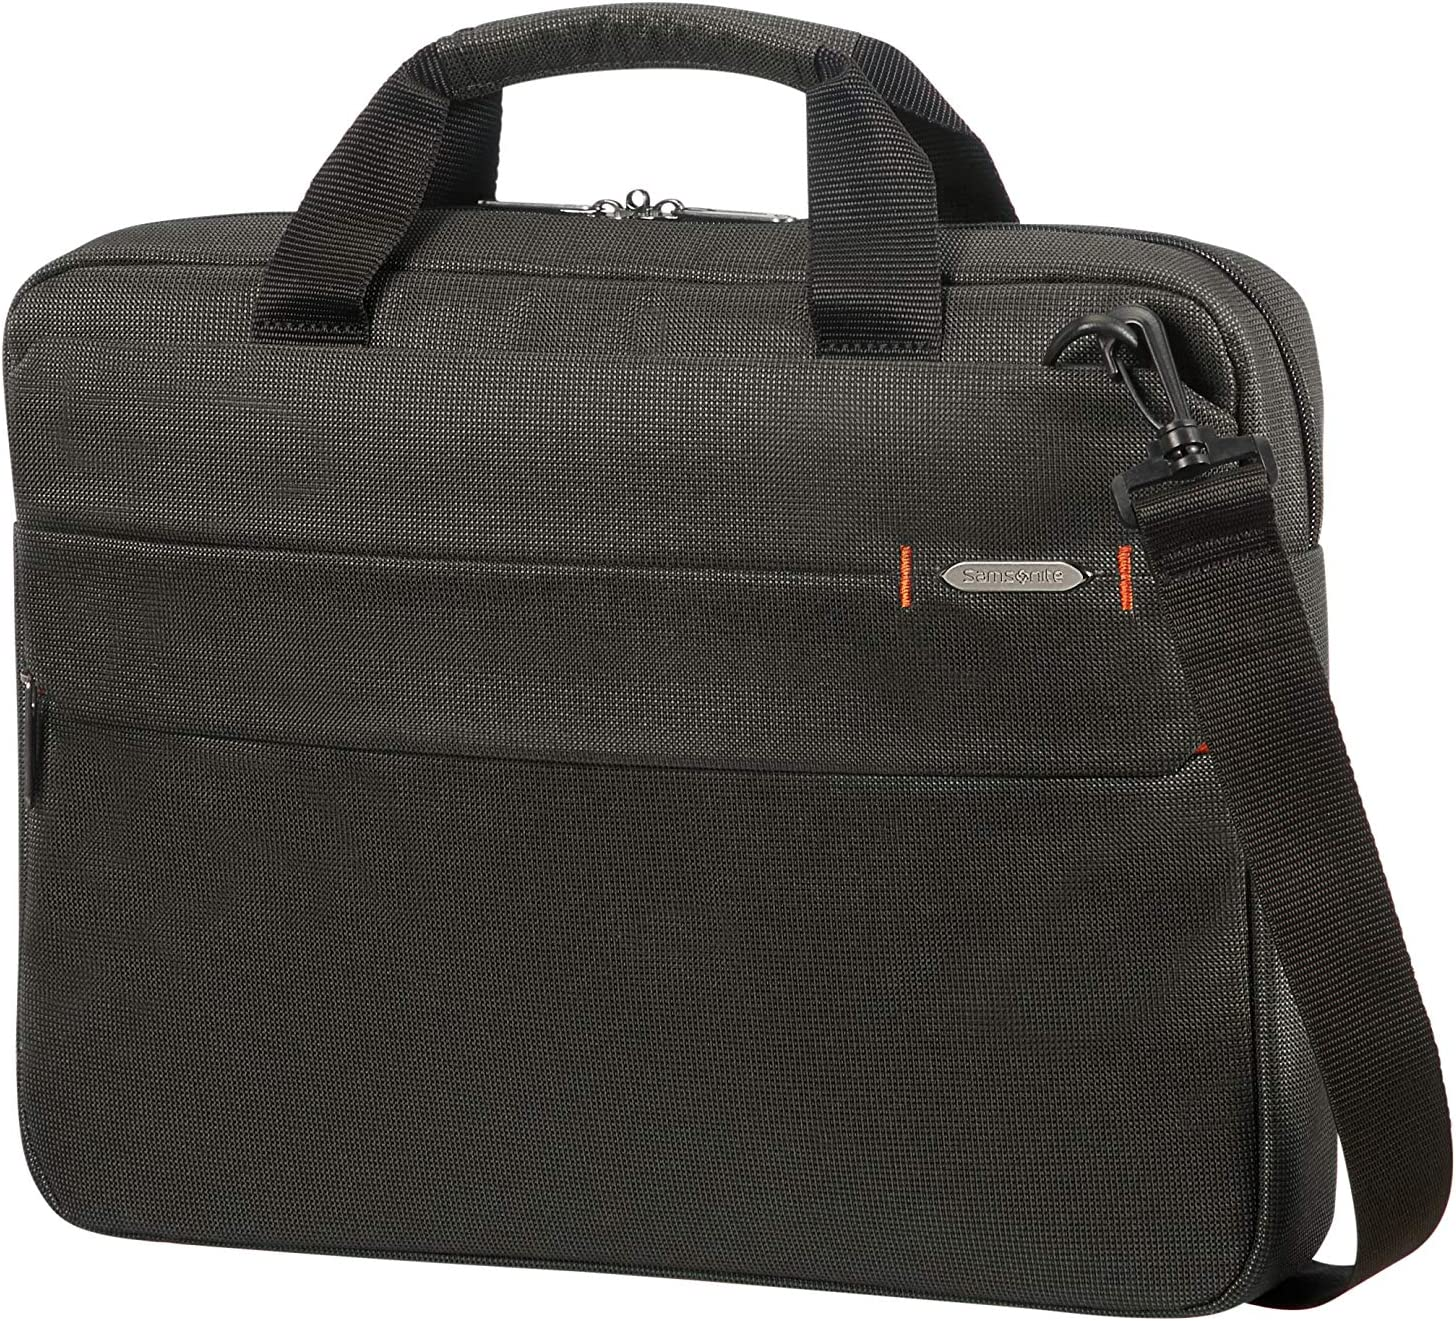 Samsonite Network 3 Briefcase 15.6